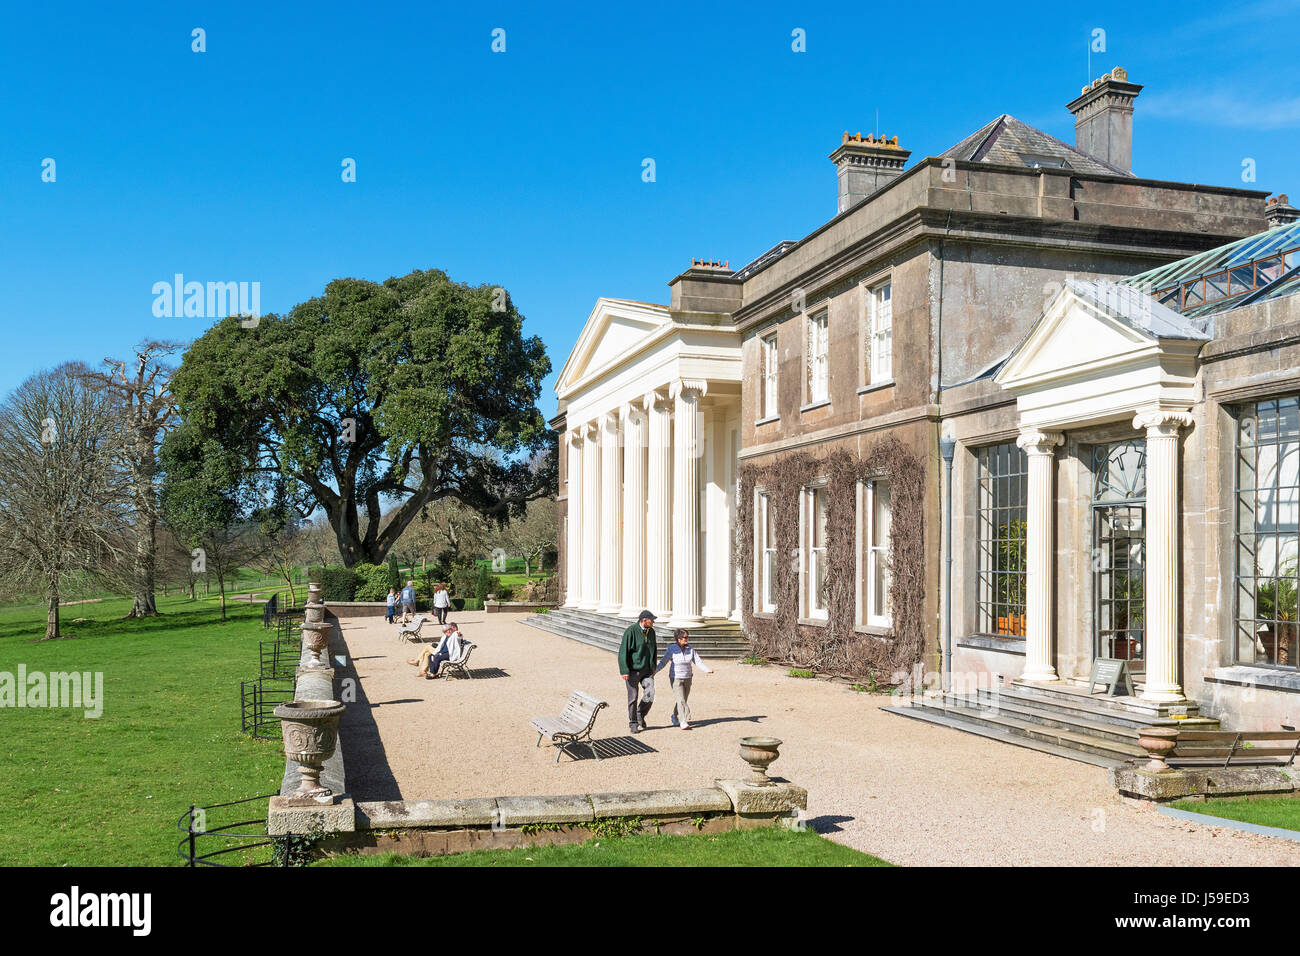 a stately home in cornwall, england, britain, uk - Stock Image